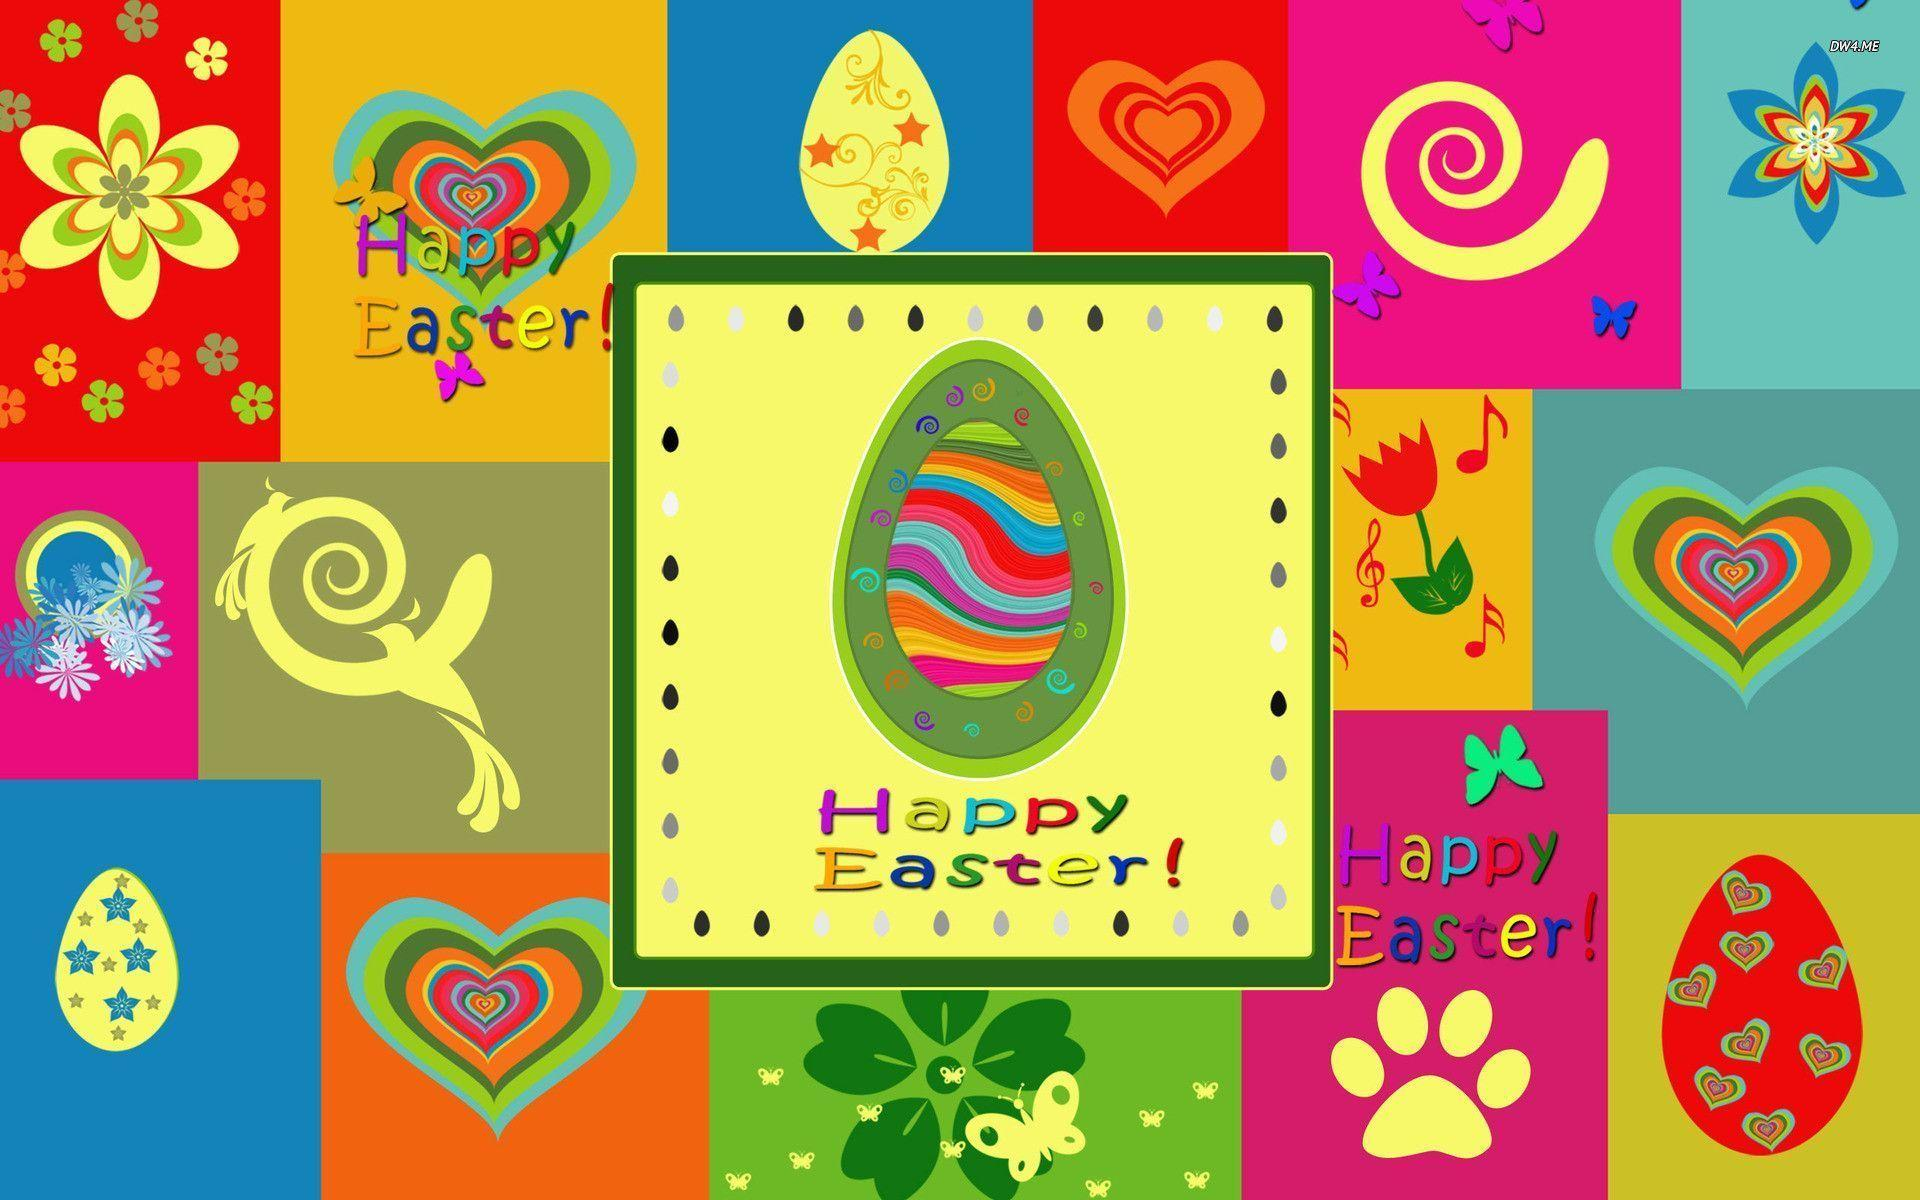 Happy Easter! wallpapers